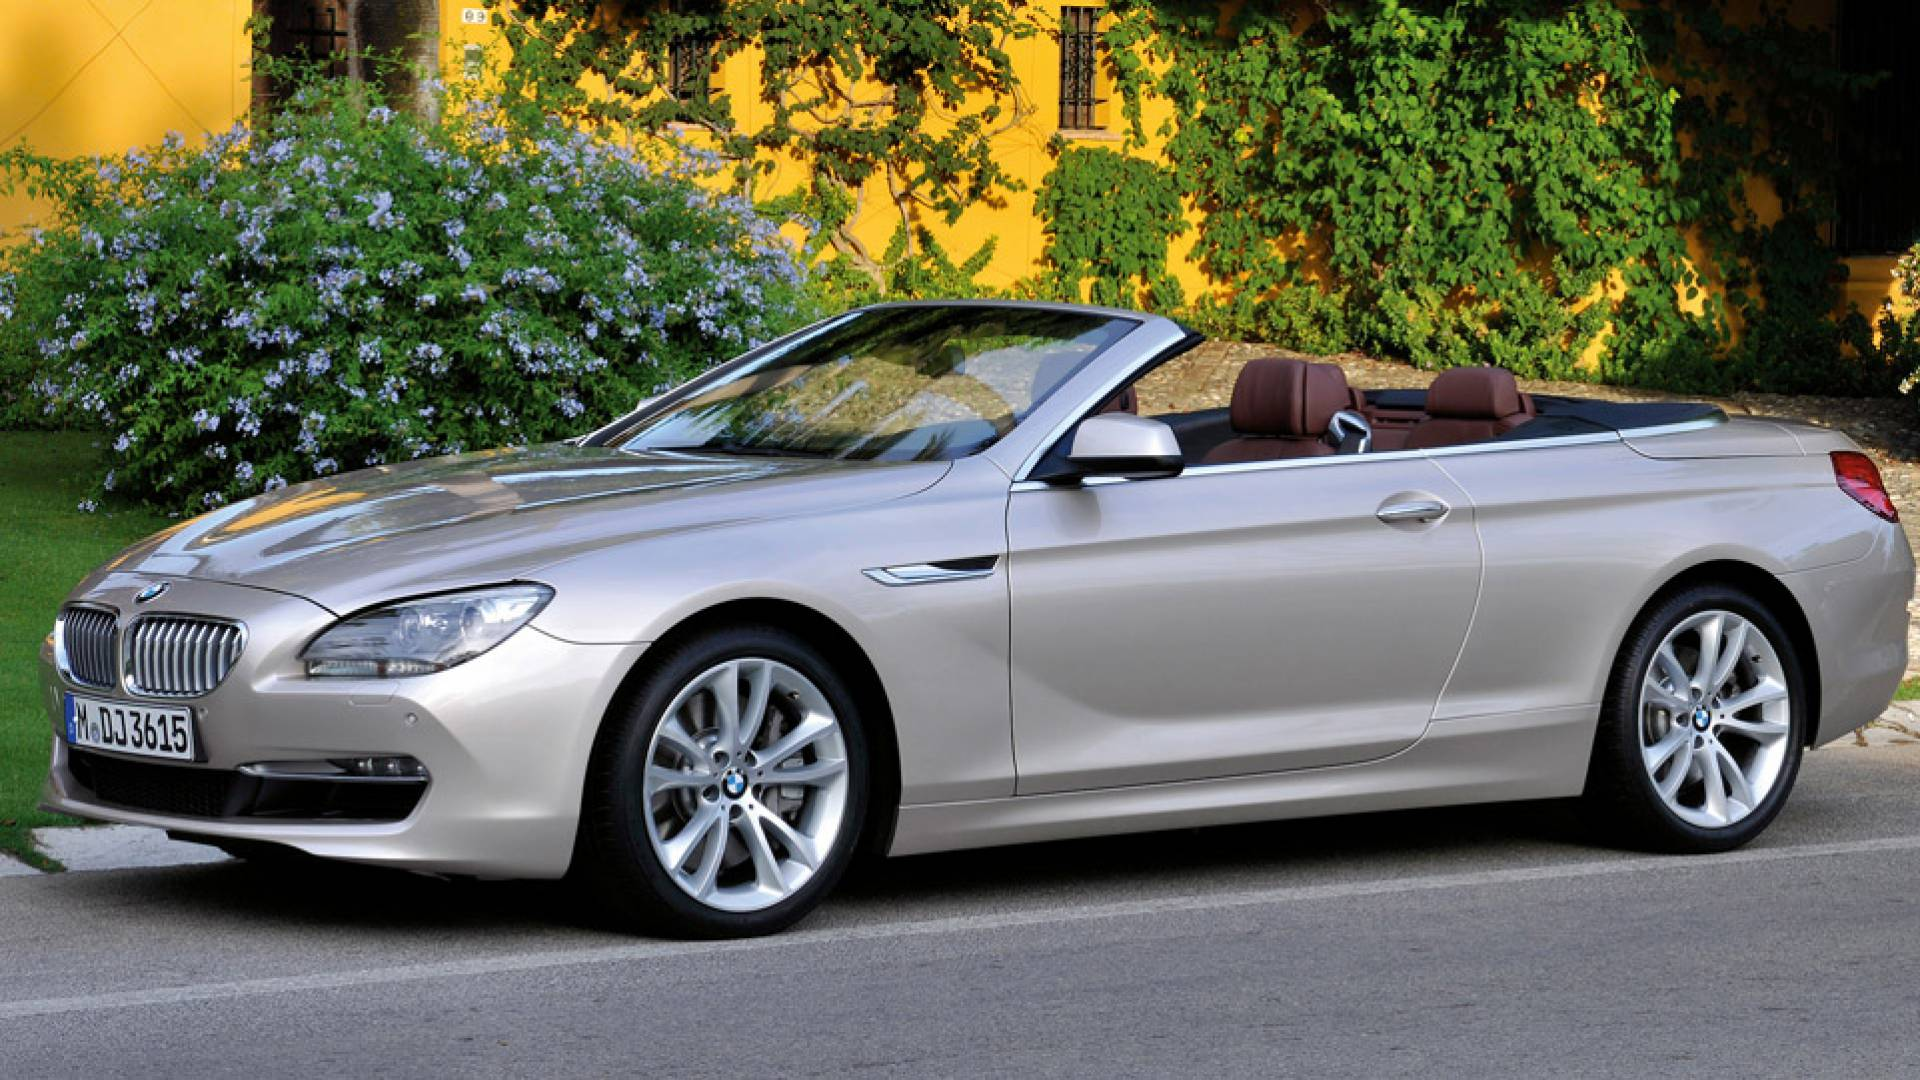 bmw serie 6 cabrio y m6 cabrio precios prueba ficha t cnica y fotos. Black Bedroom Furniture Sets. Home Design Ideas